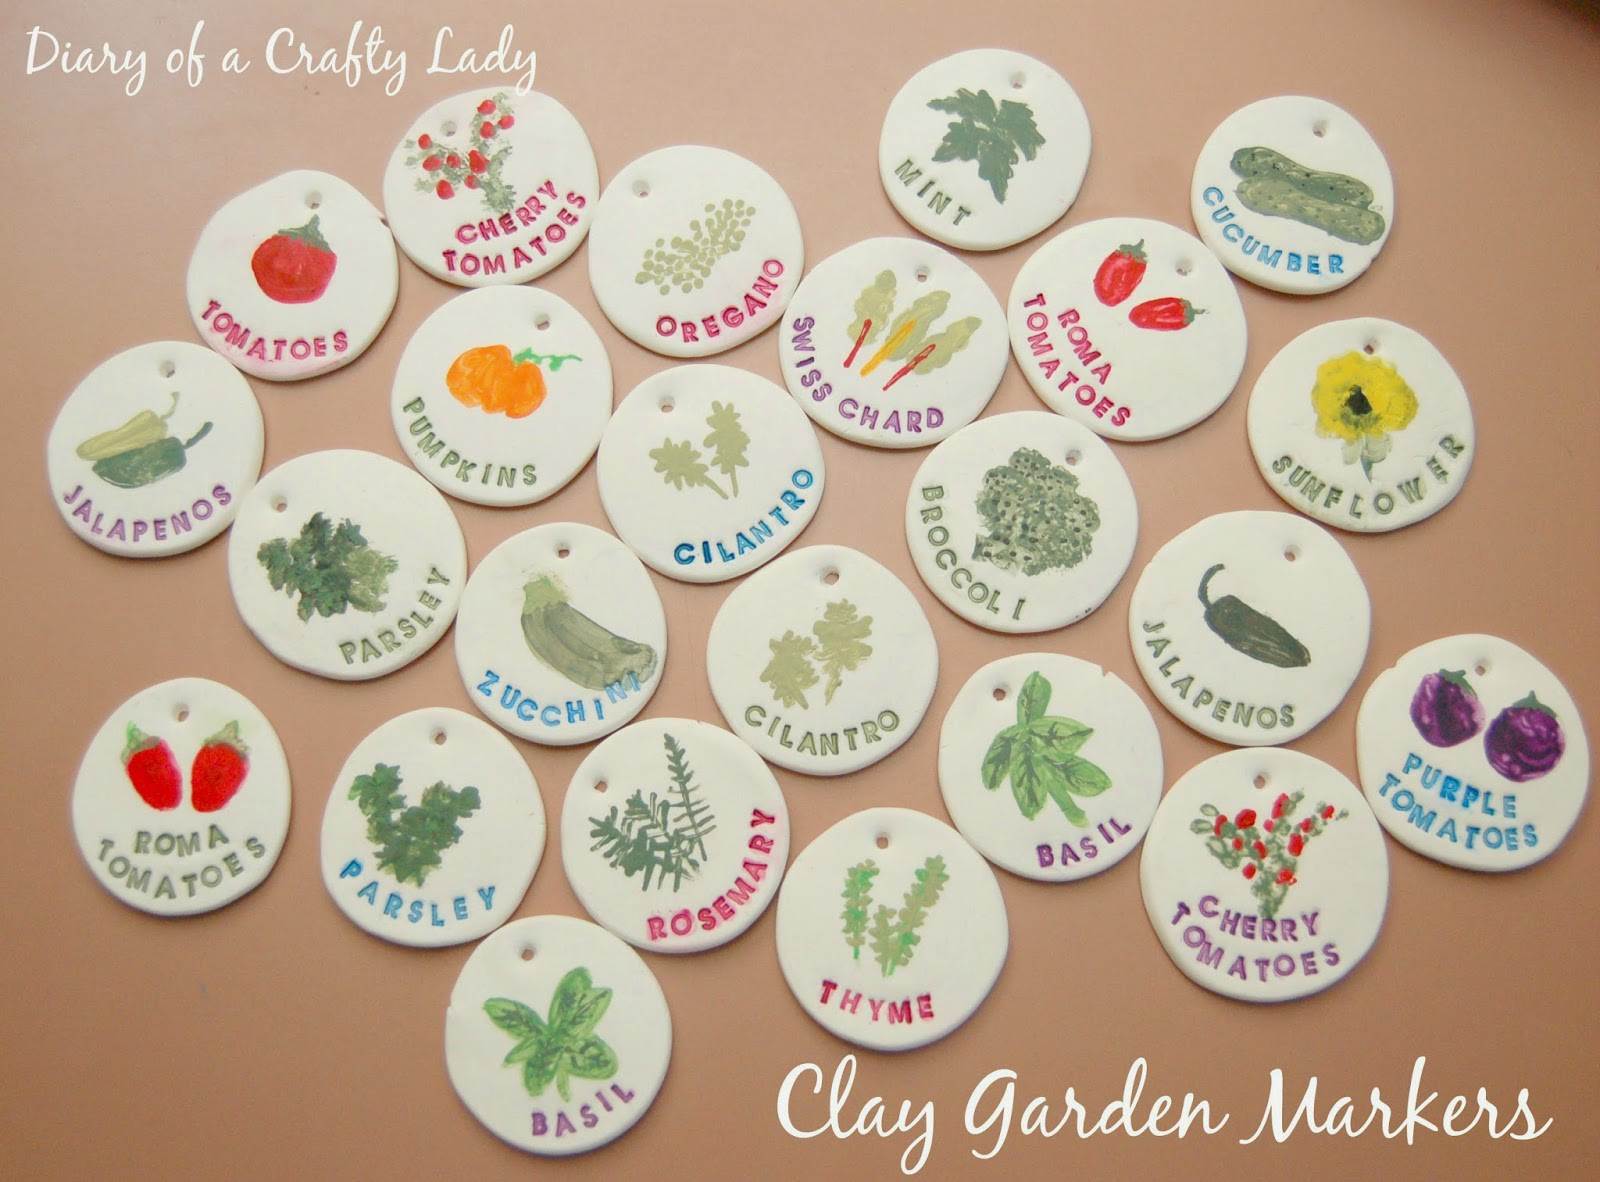 Diary of a Crafty Lady Clay Garden Markers